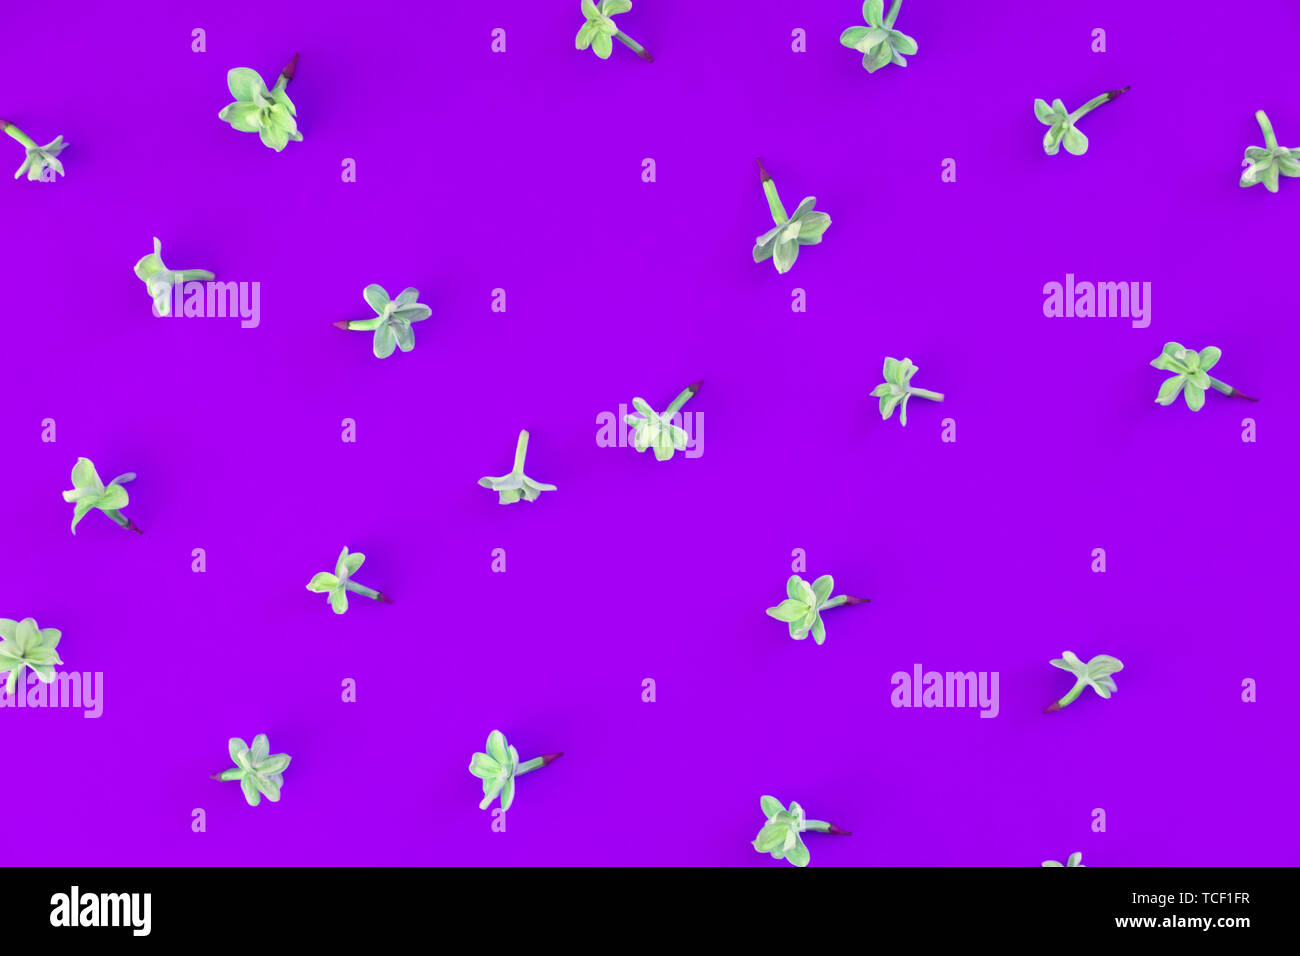 Floral Simple Minimalist Wallpaper Lilac Bloom Isolated Top View